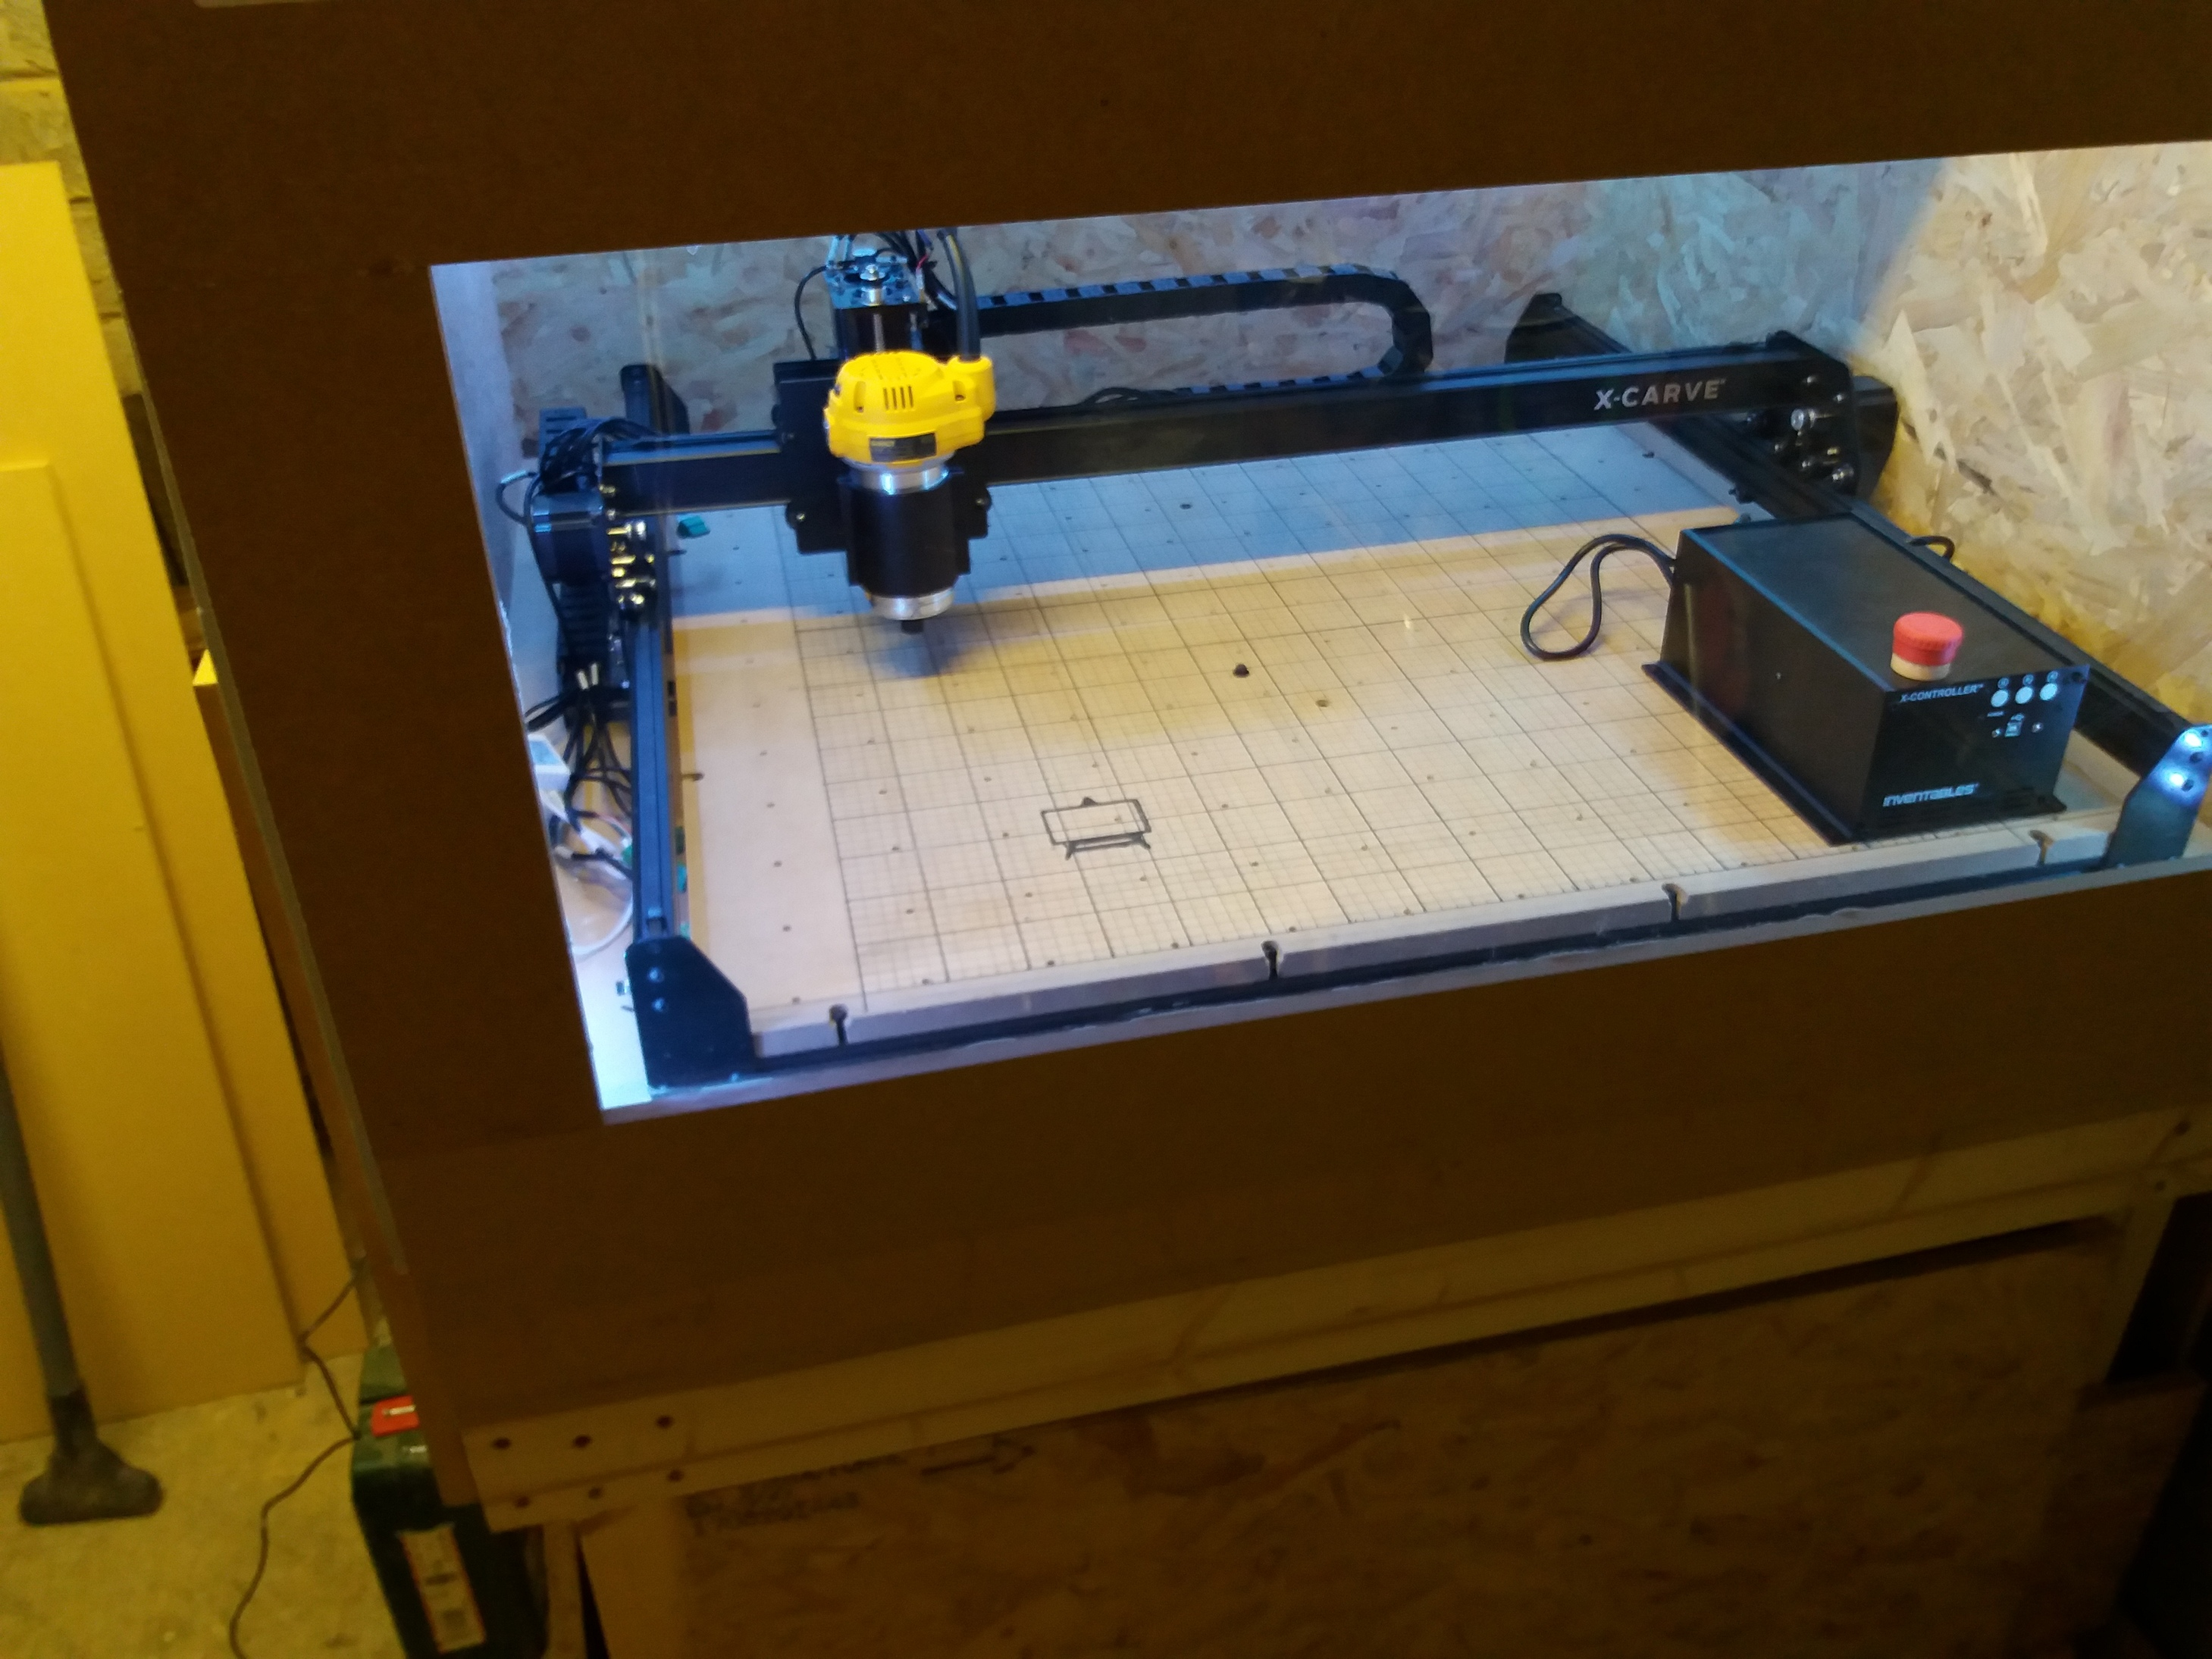 Swell Good Workbench Size For 1000 X Carve Inventables Onthecornerstone Fun Painted Chair Ideas Images Onthecornerstoneorg